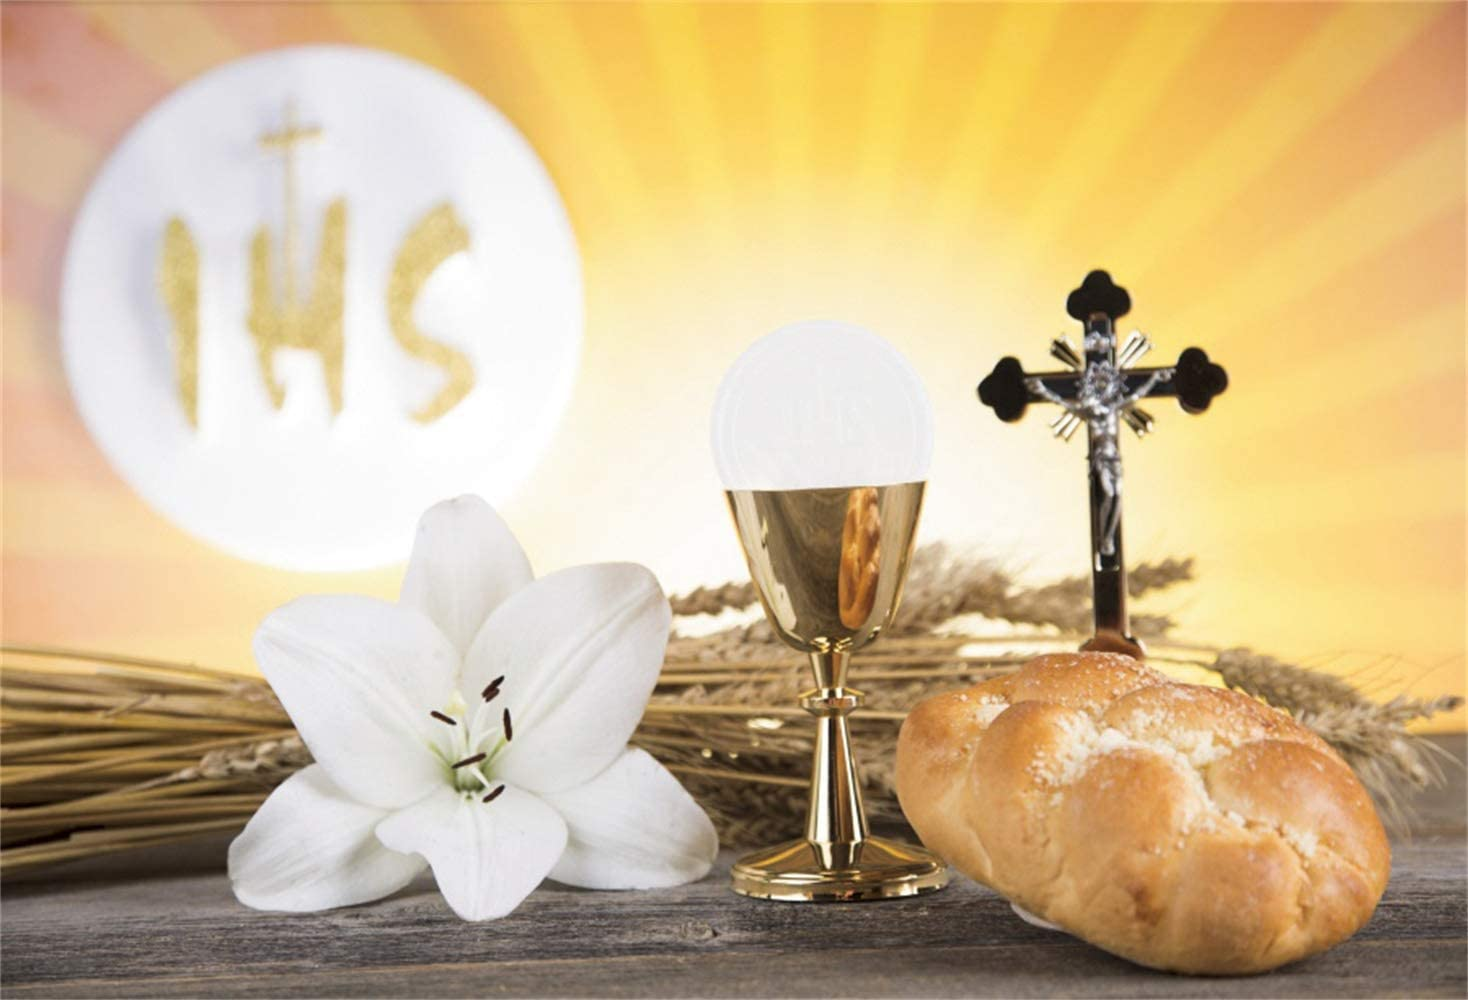 Leowefowa Holy 35% OFF Communion Attention brand Backdrop 7x5ft Br Lily Chalice Crucifix